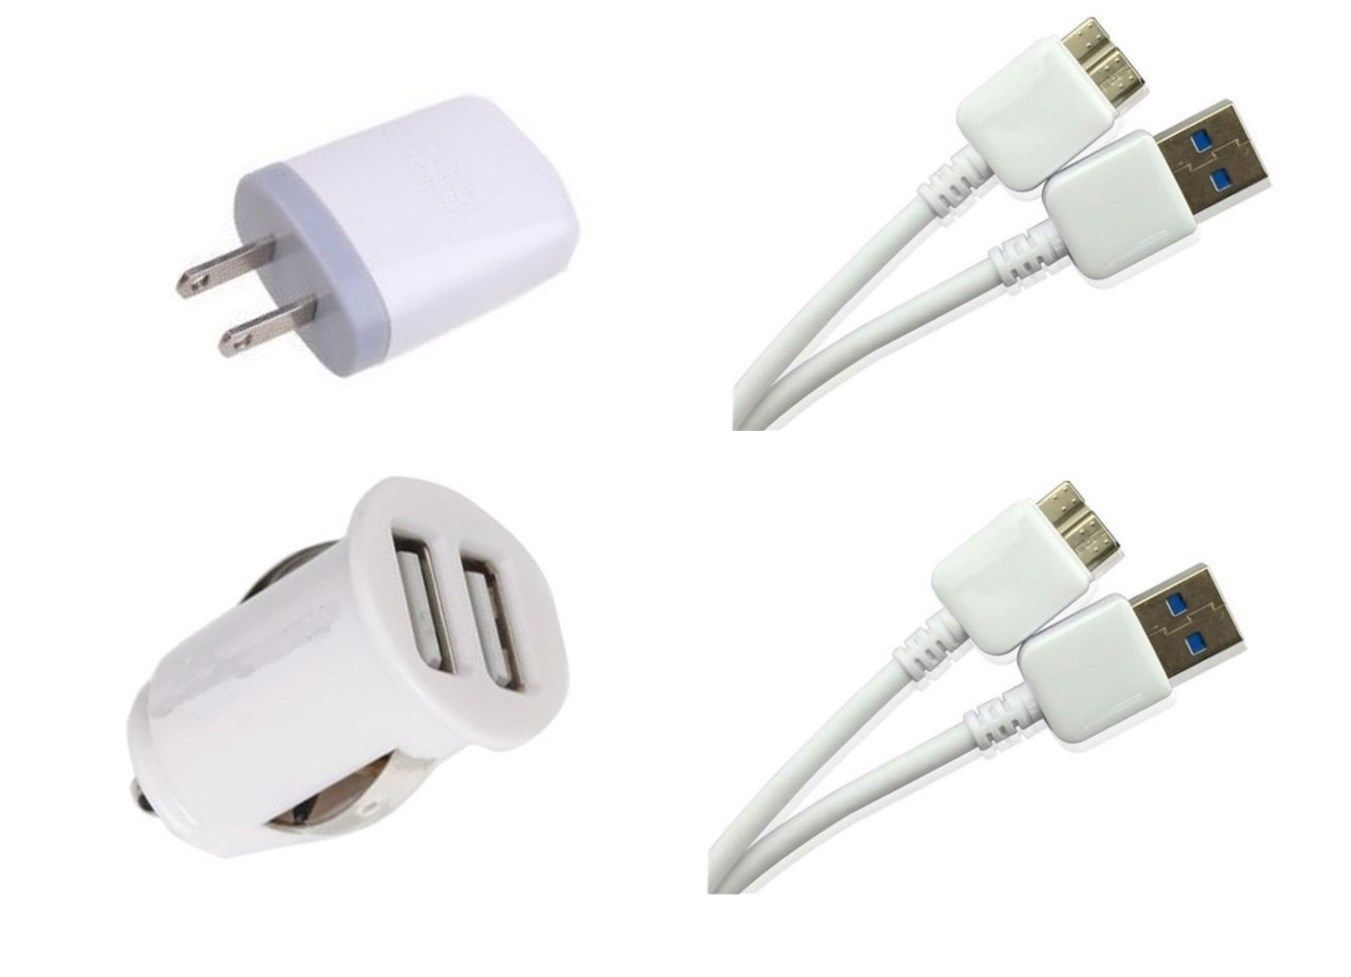 Samsung Galaxy Note 3 N900A Dual Car Charger + 2X USB 3.0 Cables + Power Plug